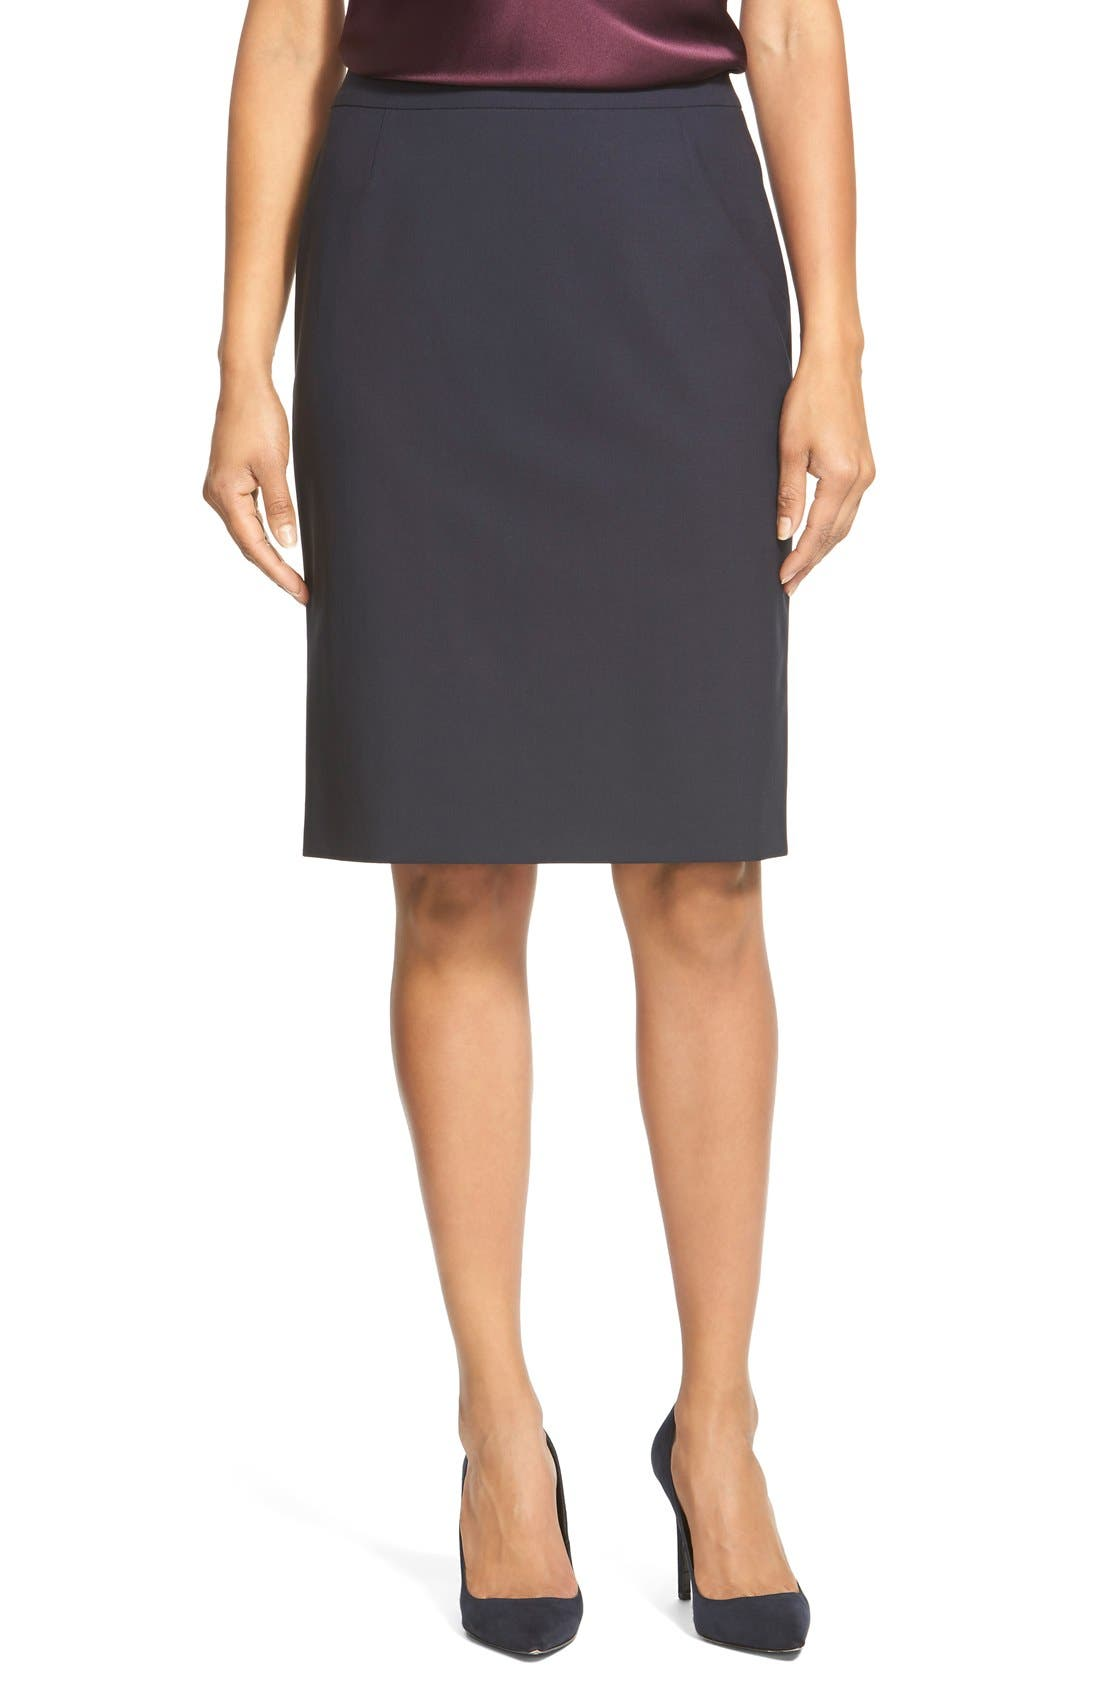 Vilea Tropical Stretch Wool Pencil Skirt,                         Main,                         color, Navy